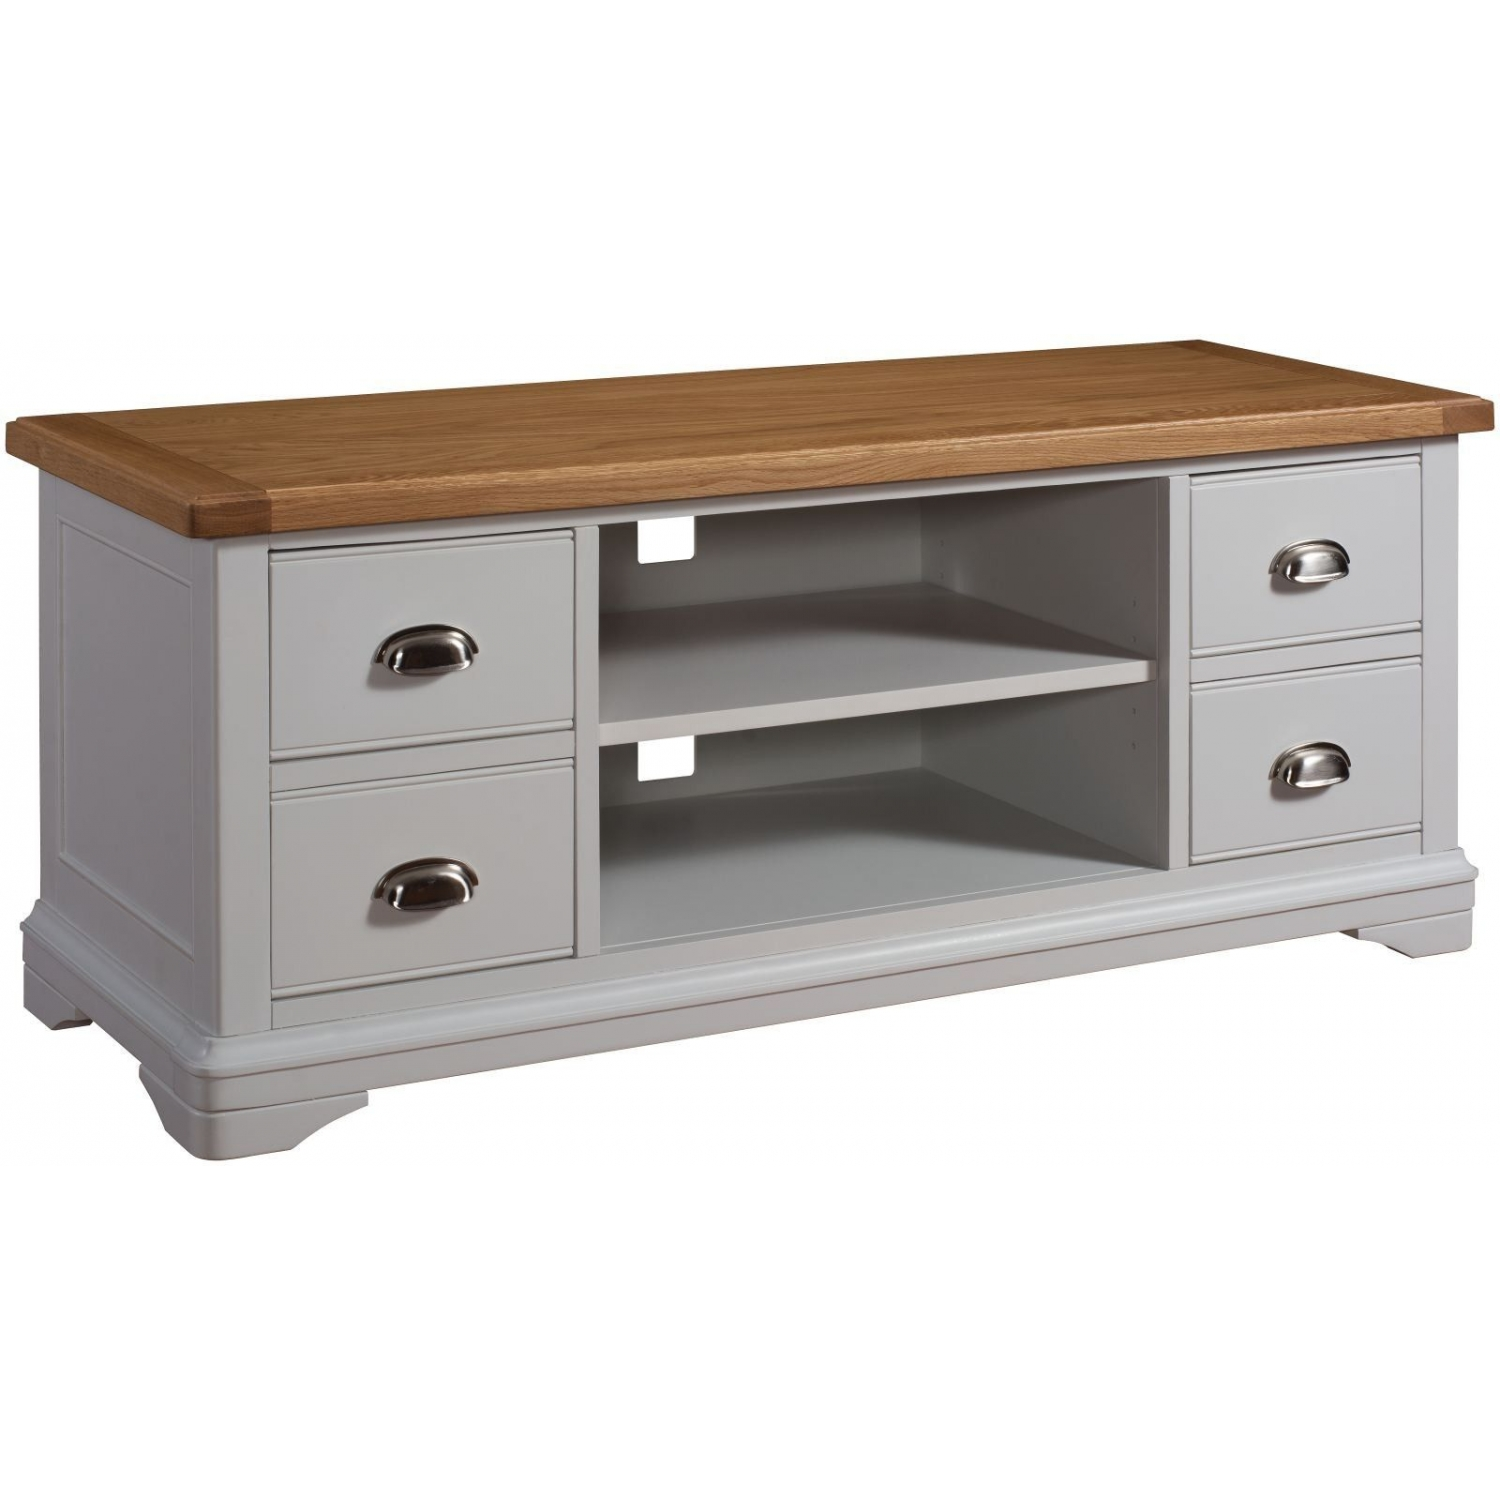 Dillon oak grey painted furniture living room television cabinet stand unit ebay Paint wood furniture